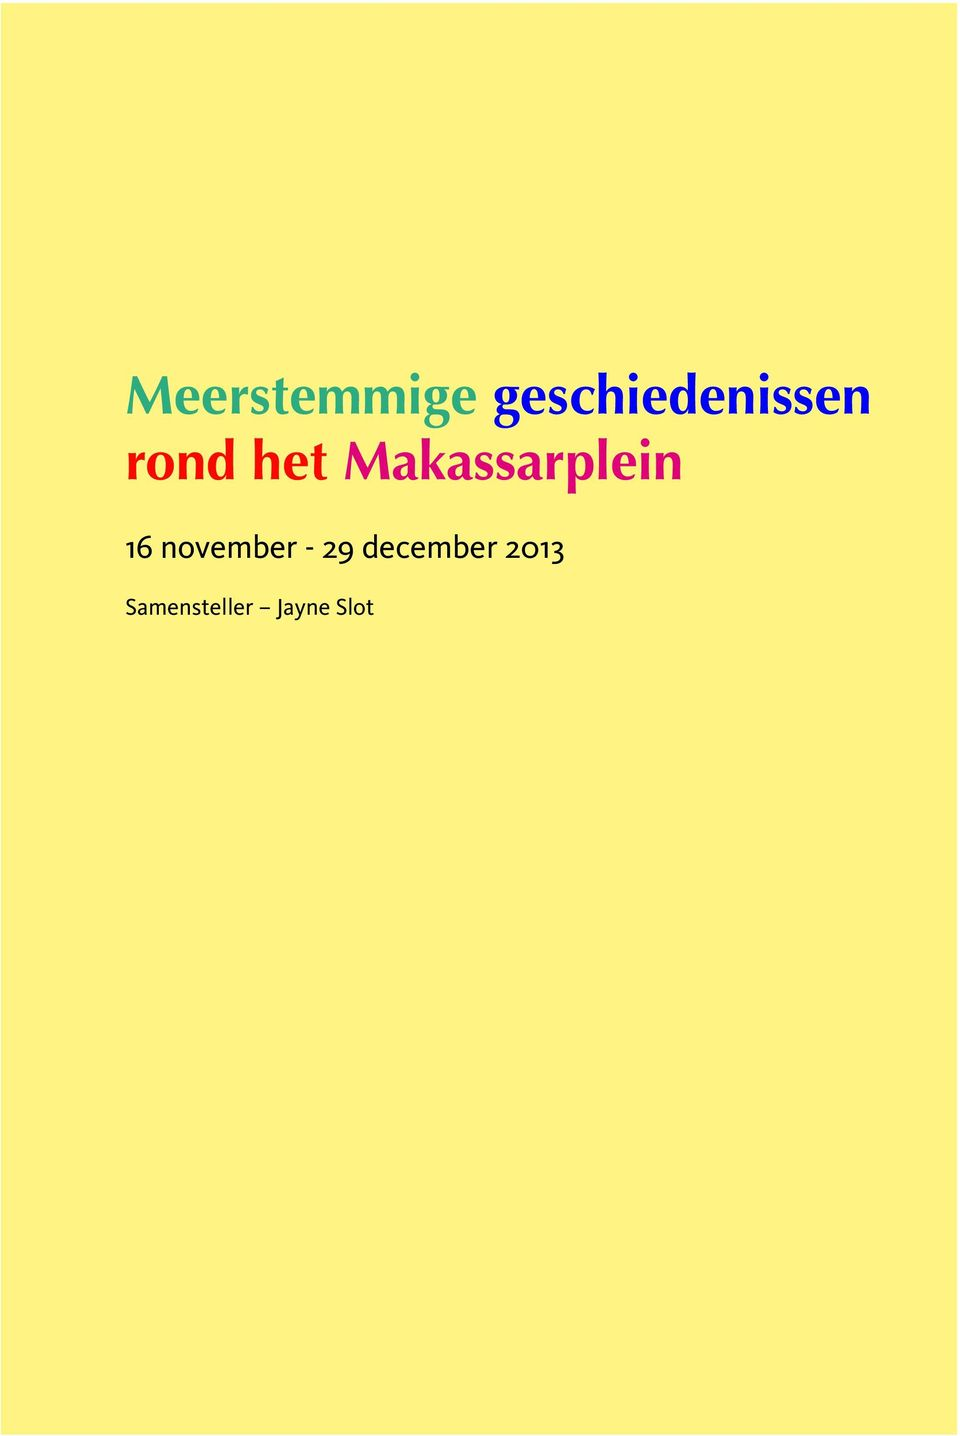 Makassarplein 16 november